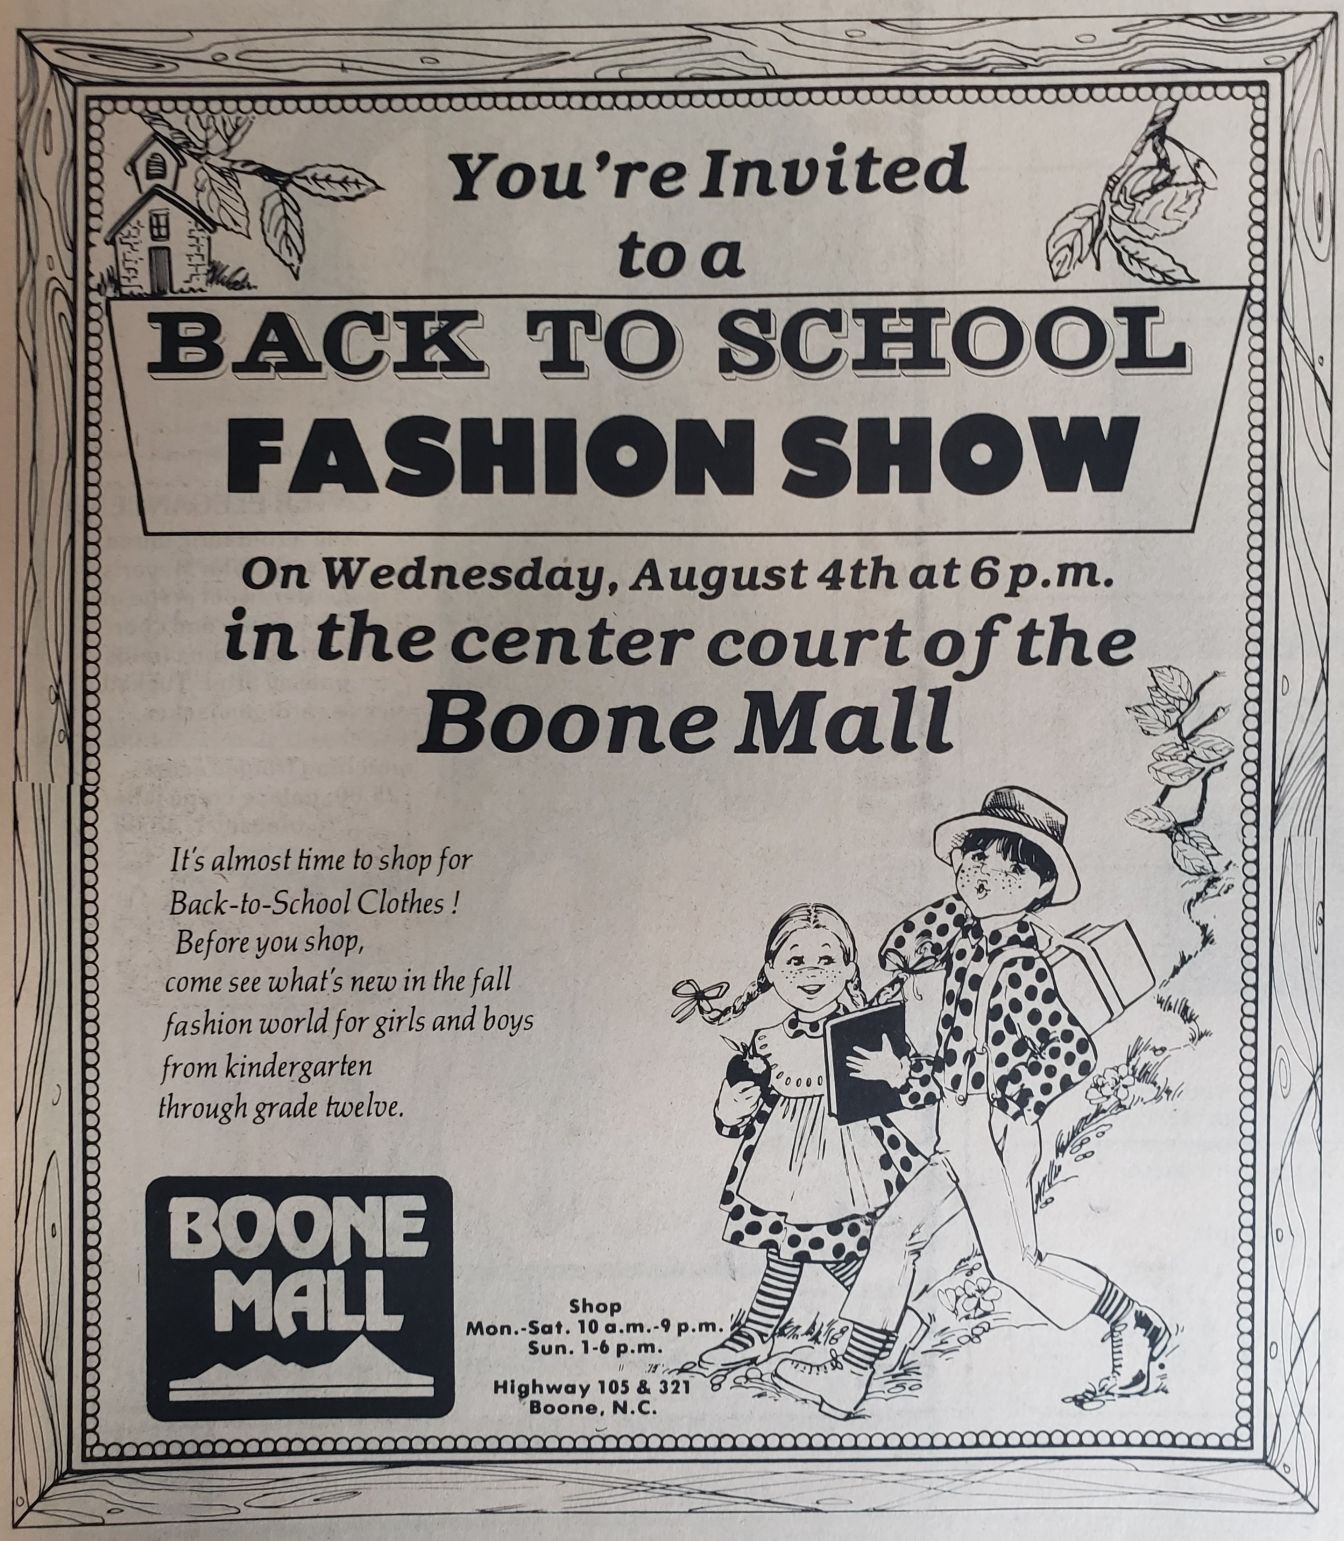 An advertisement for a 1982 back to school fashion show in the Boone mall.